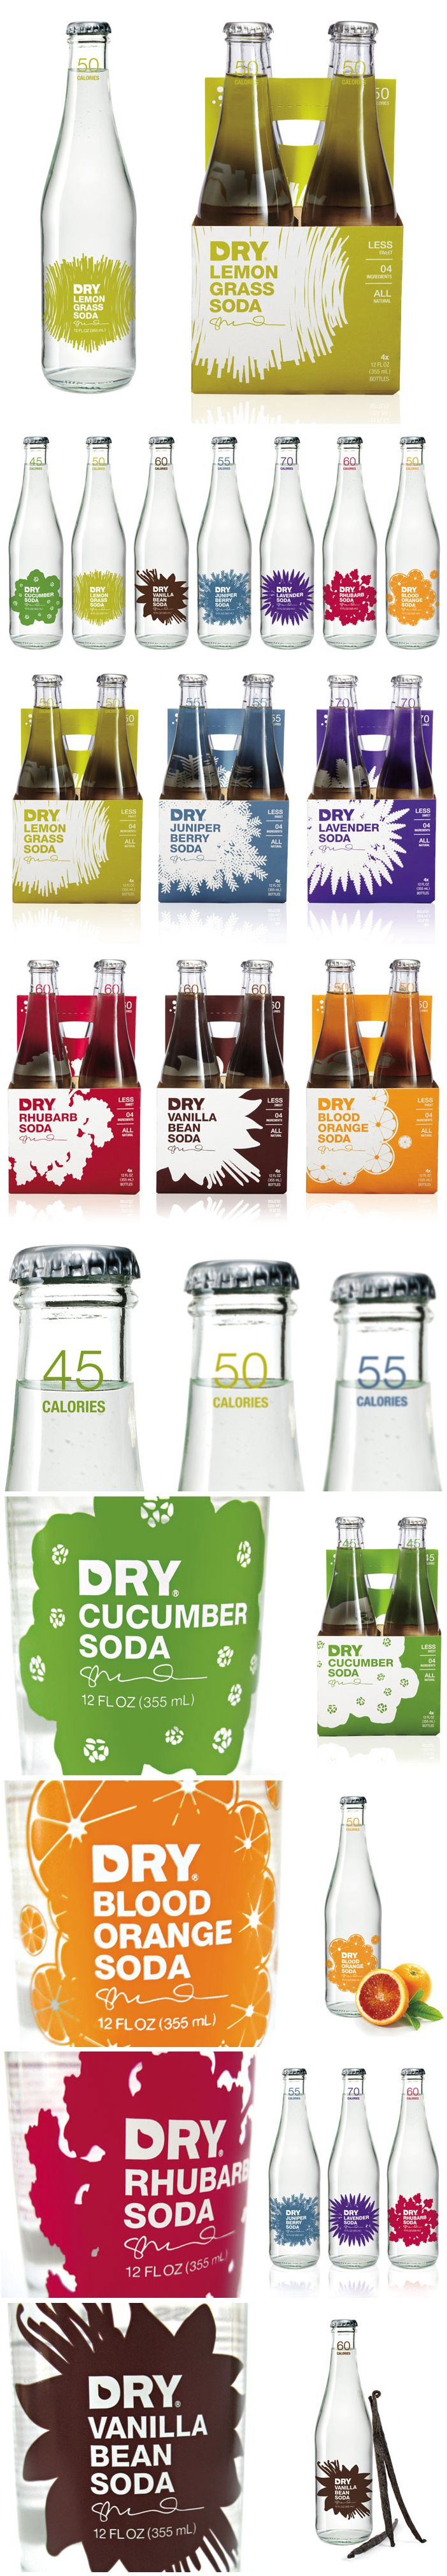 Dry Soda. I met the husband of the designer! Love this stuff and Seattle. Both are beautiful.